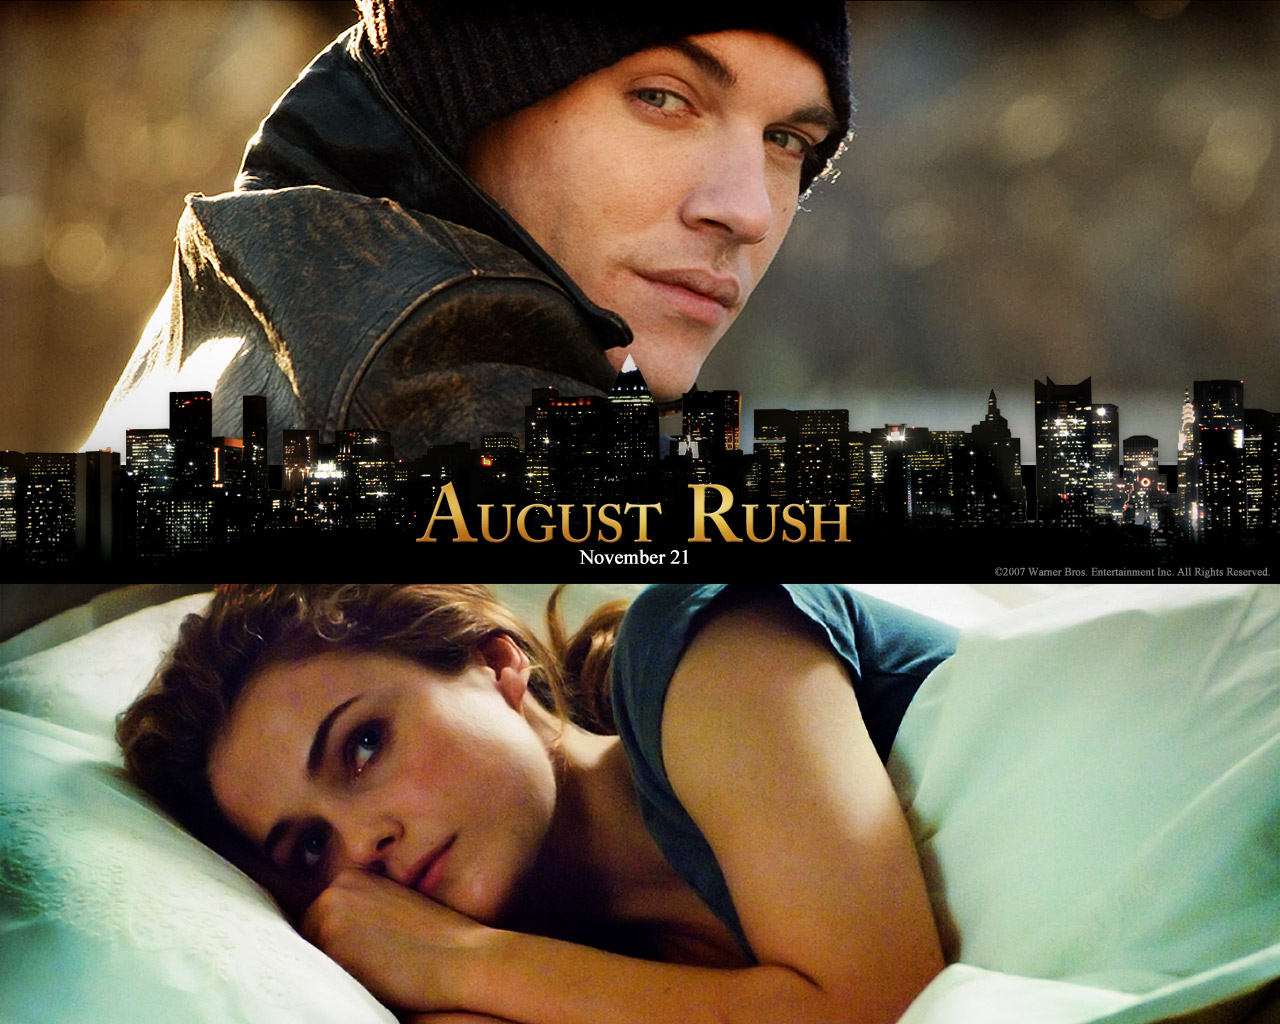 August Rush Backgrounds, Compatible - PC, Mobile, Gadgets  1280x1024 px